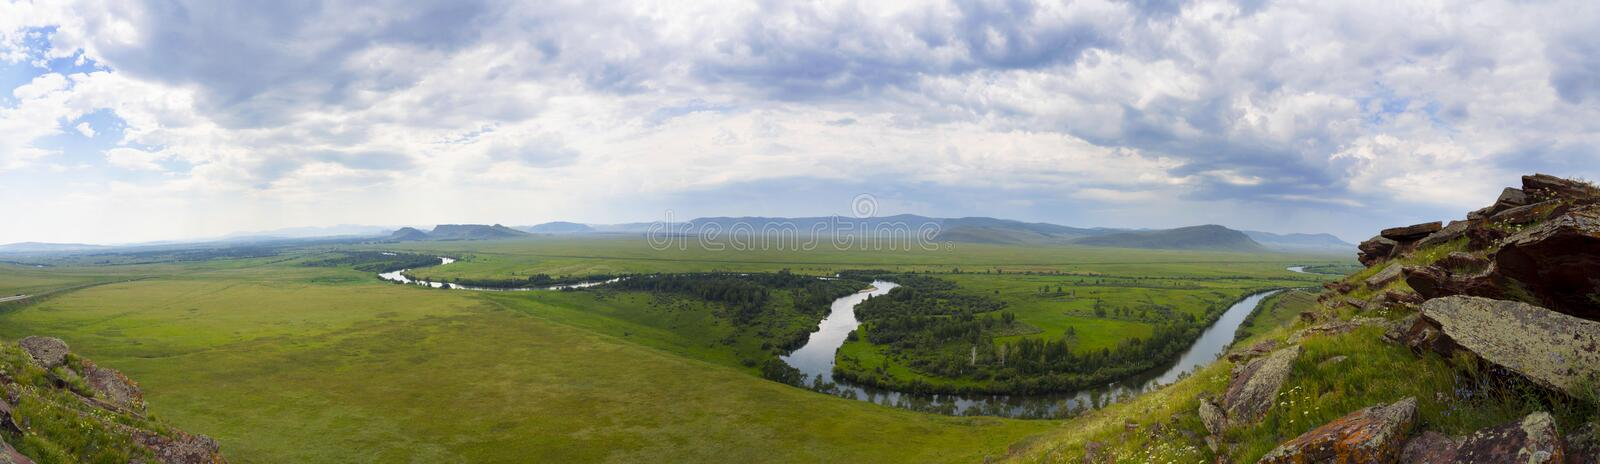 Download A Large Panorama Of A Beautiful Green Meadow With Mountains In The Background And A River Along Its Entire Length. Stock Image - Image of lake, blue: 102673411